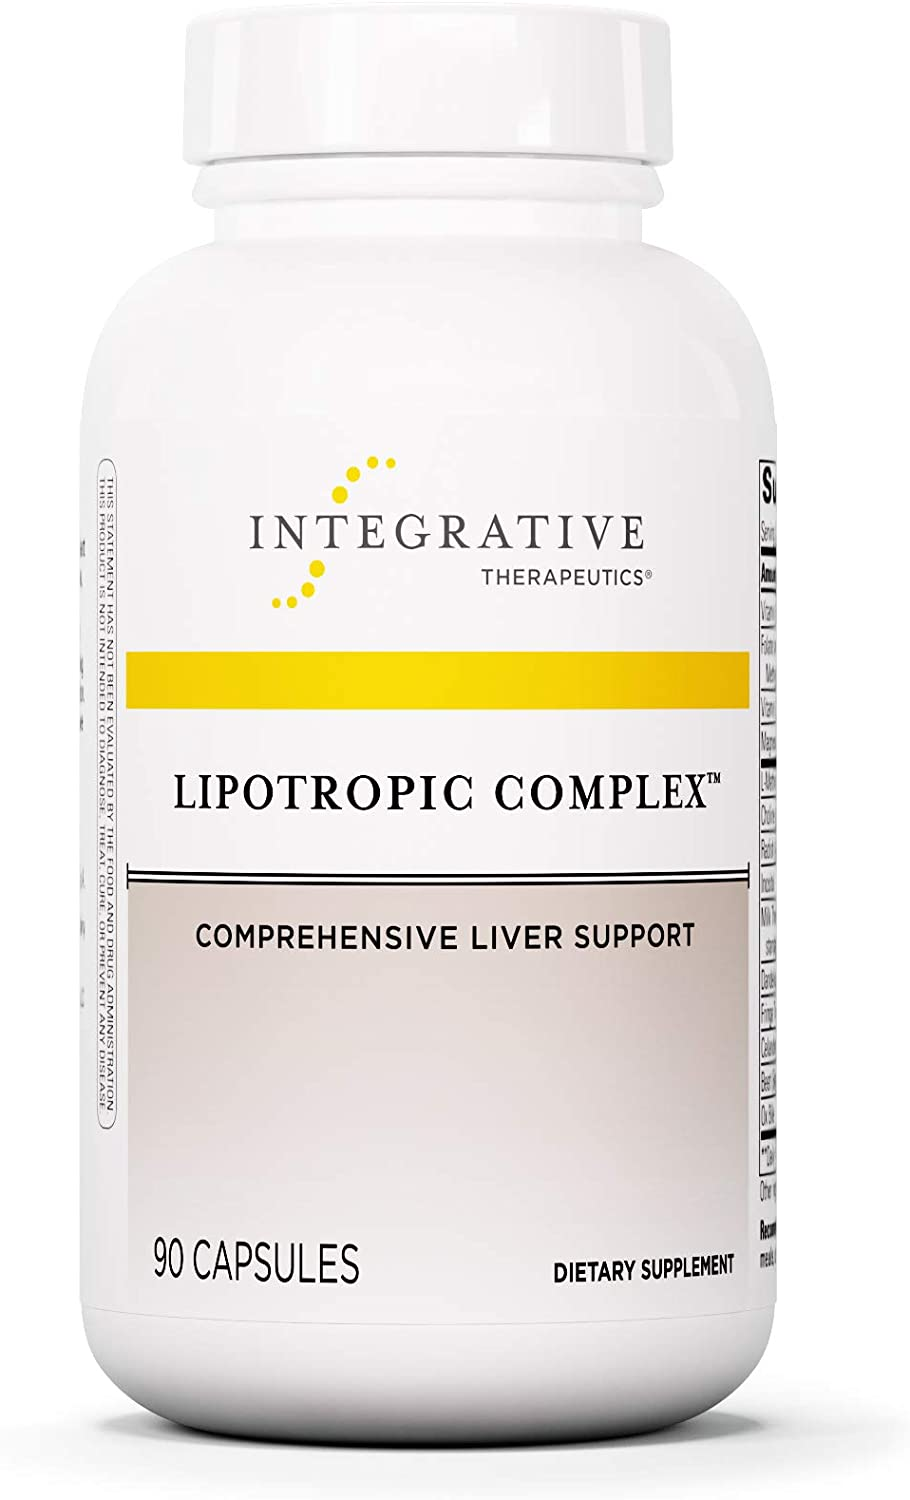 Integrative Therapeutics Lipotropic Complex - 90 Capsules